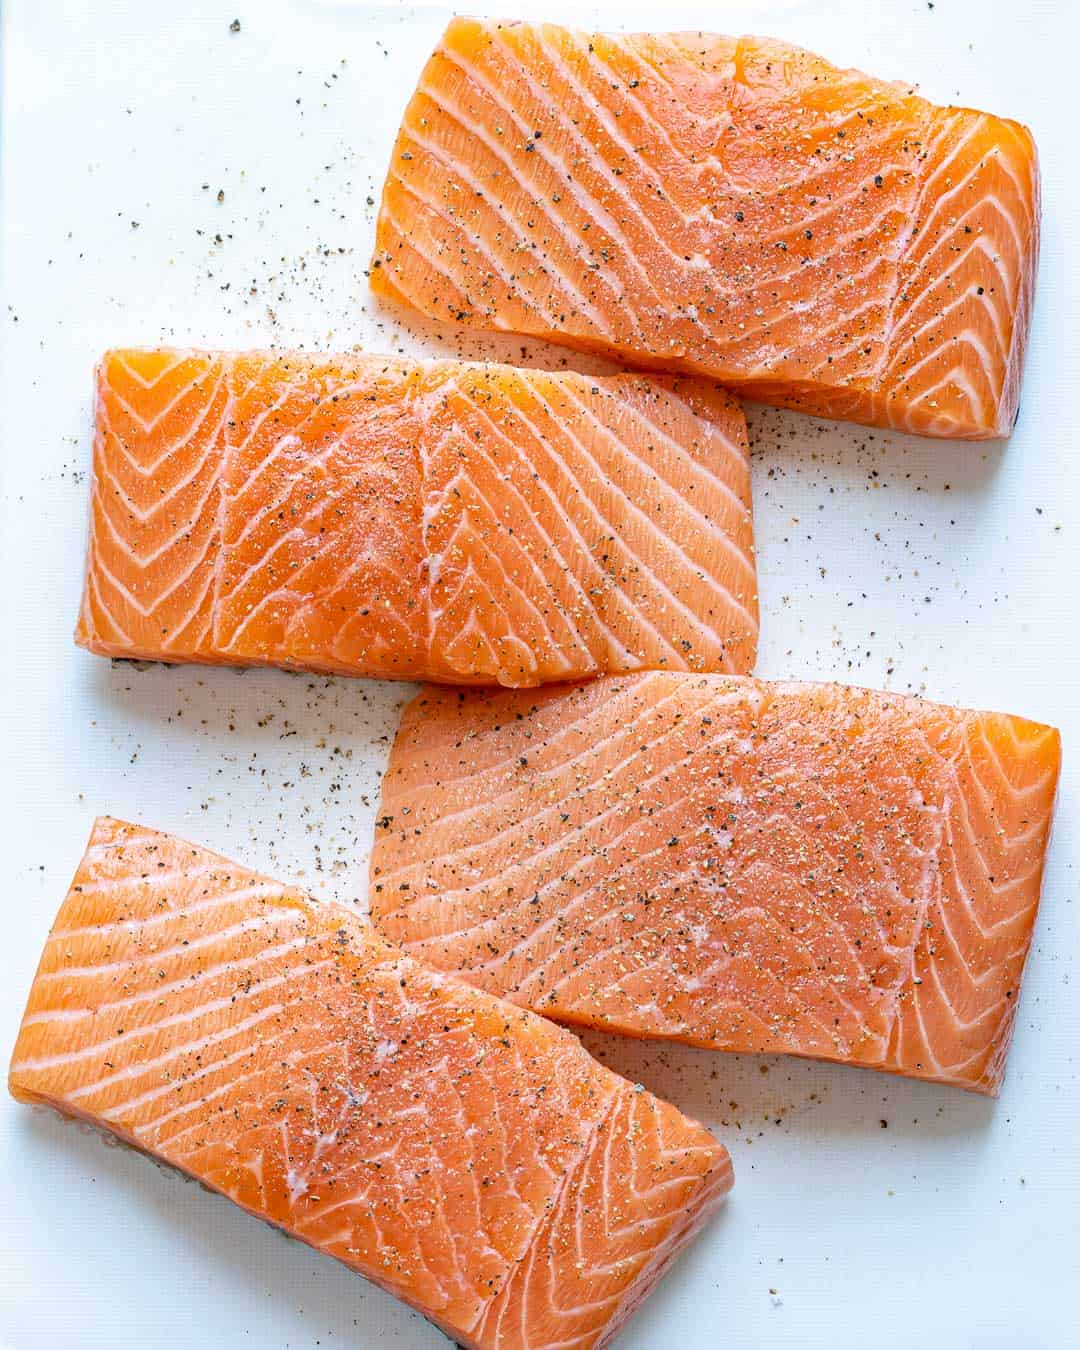 Four salmon filets seasoned with salt and pepper